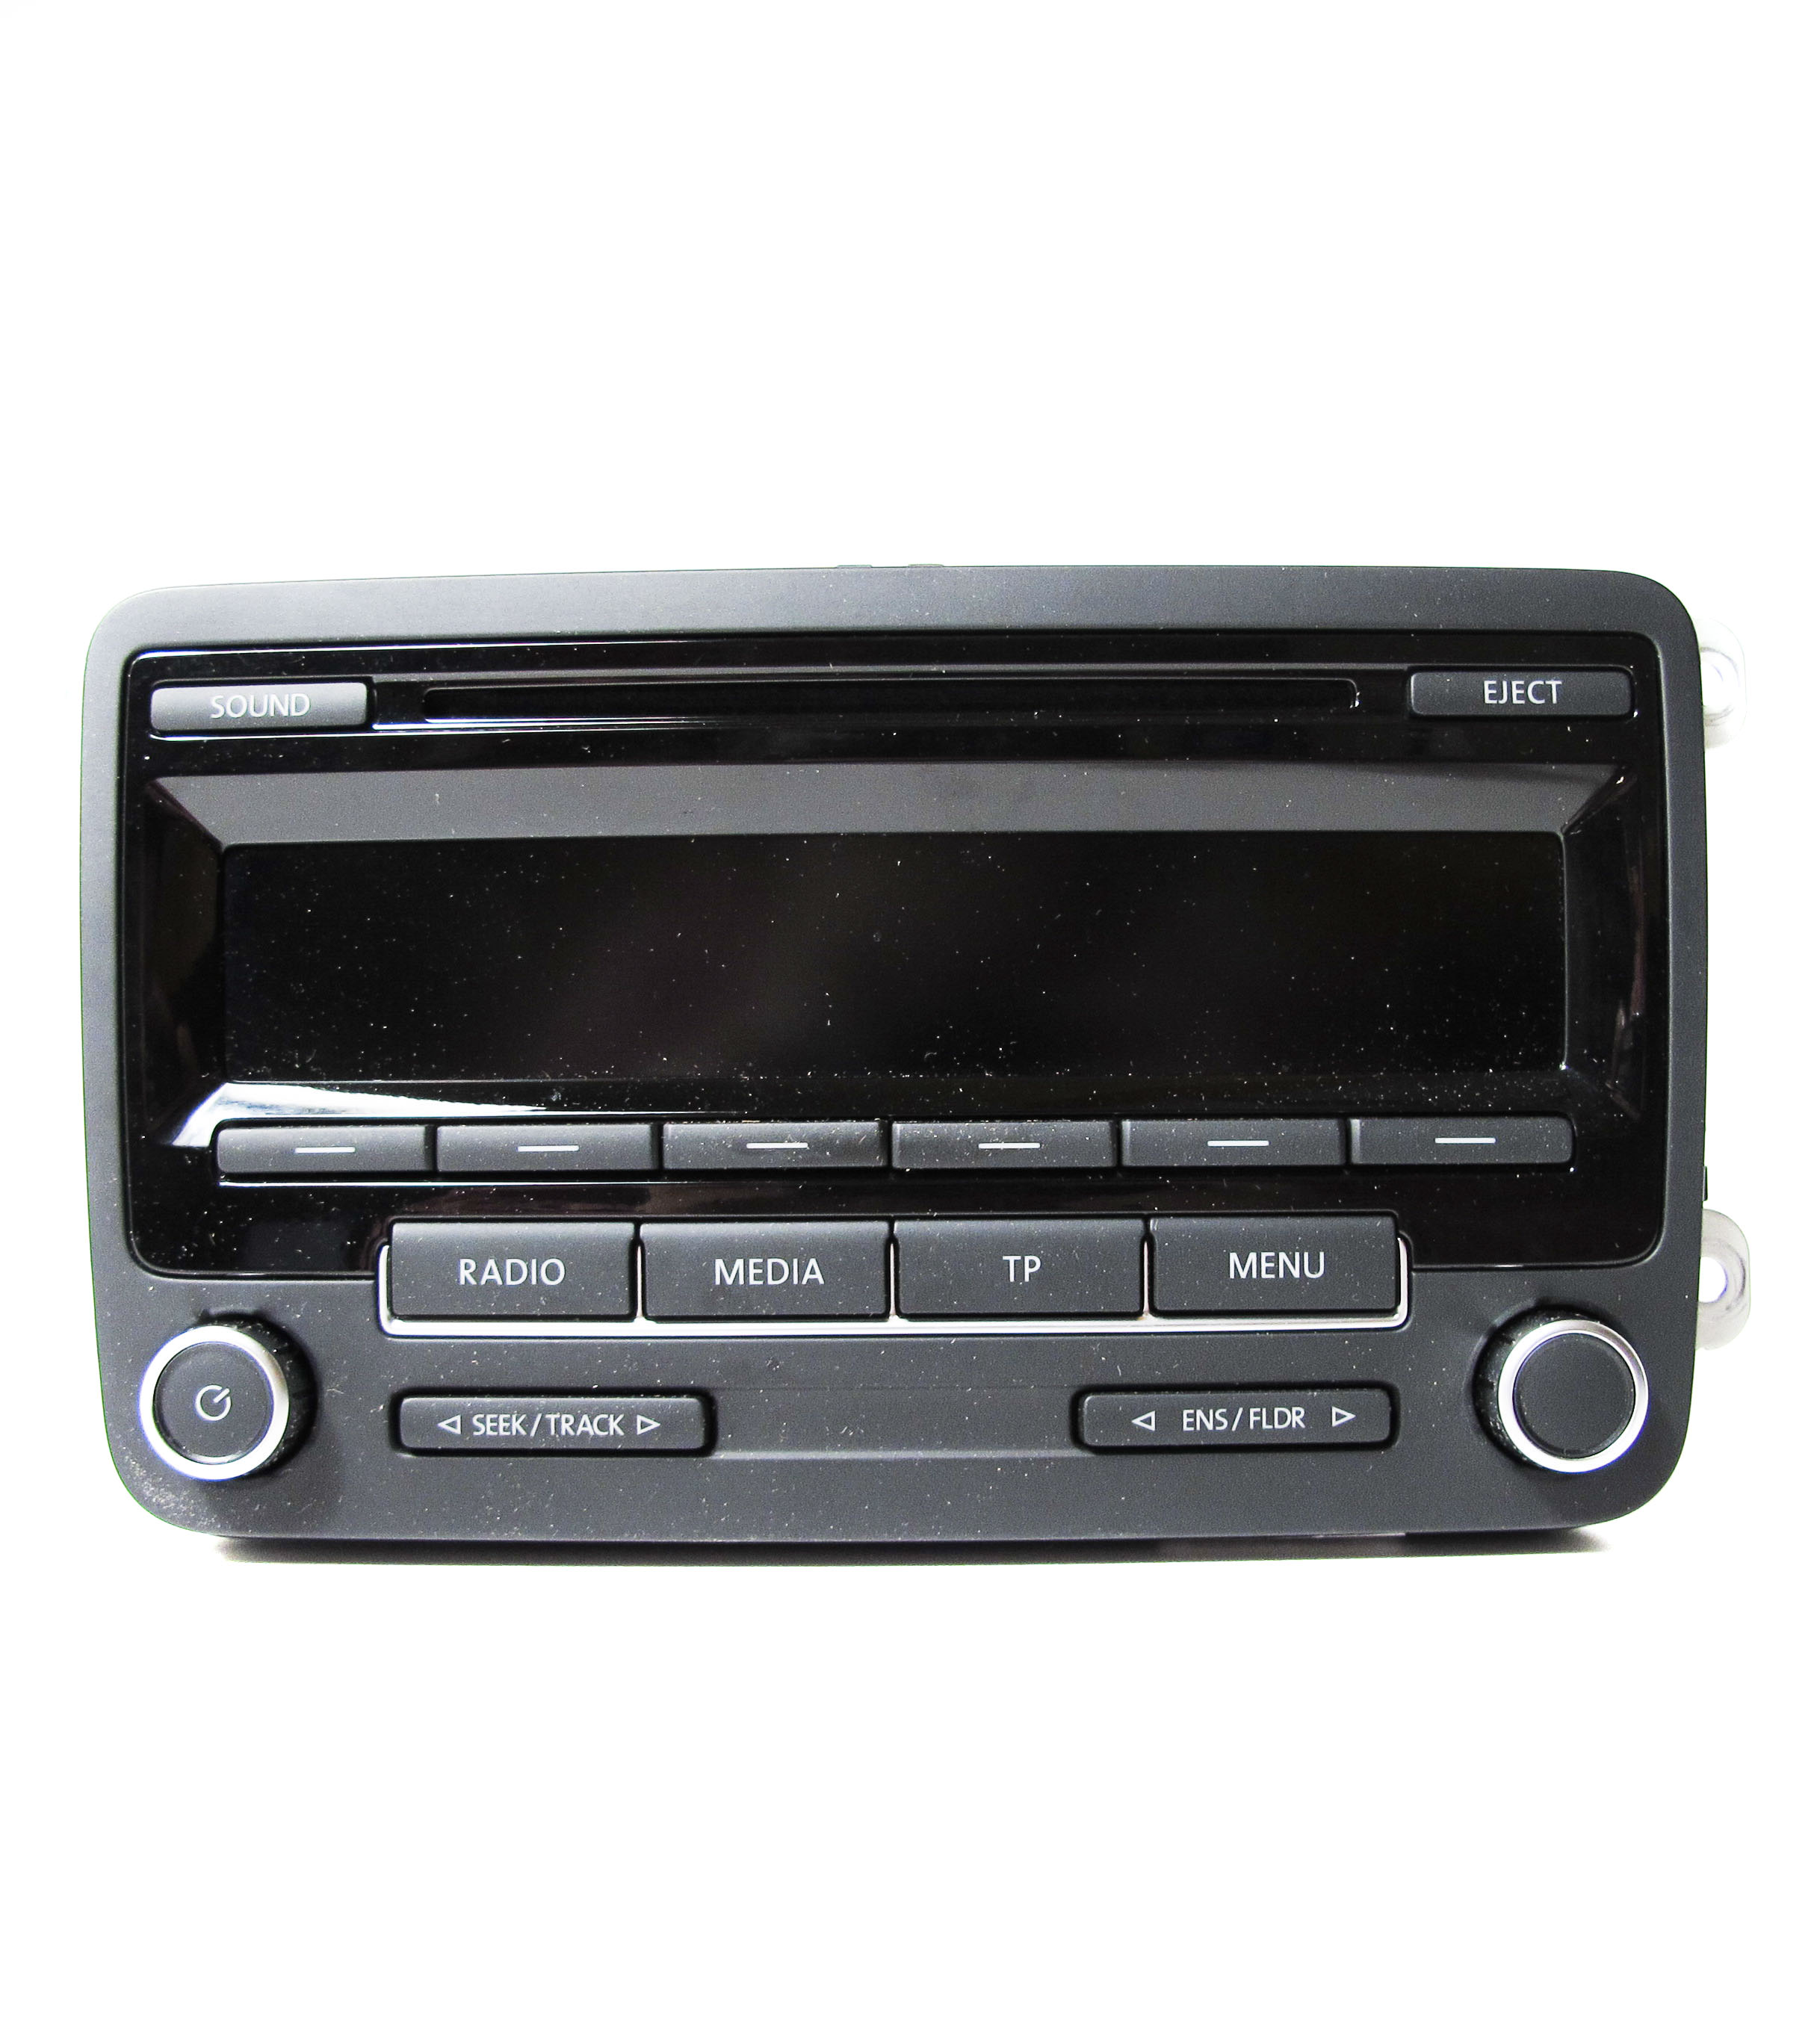 genuine vw golf polo passat scirocco touran cd radio 5m0. Black Bedroom Furniture Sets. Home Design Ideas